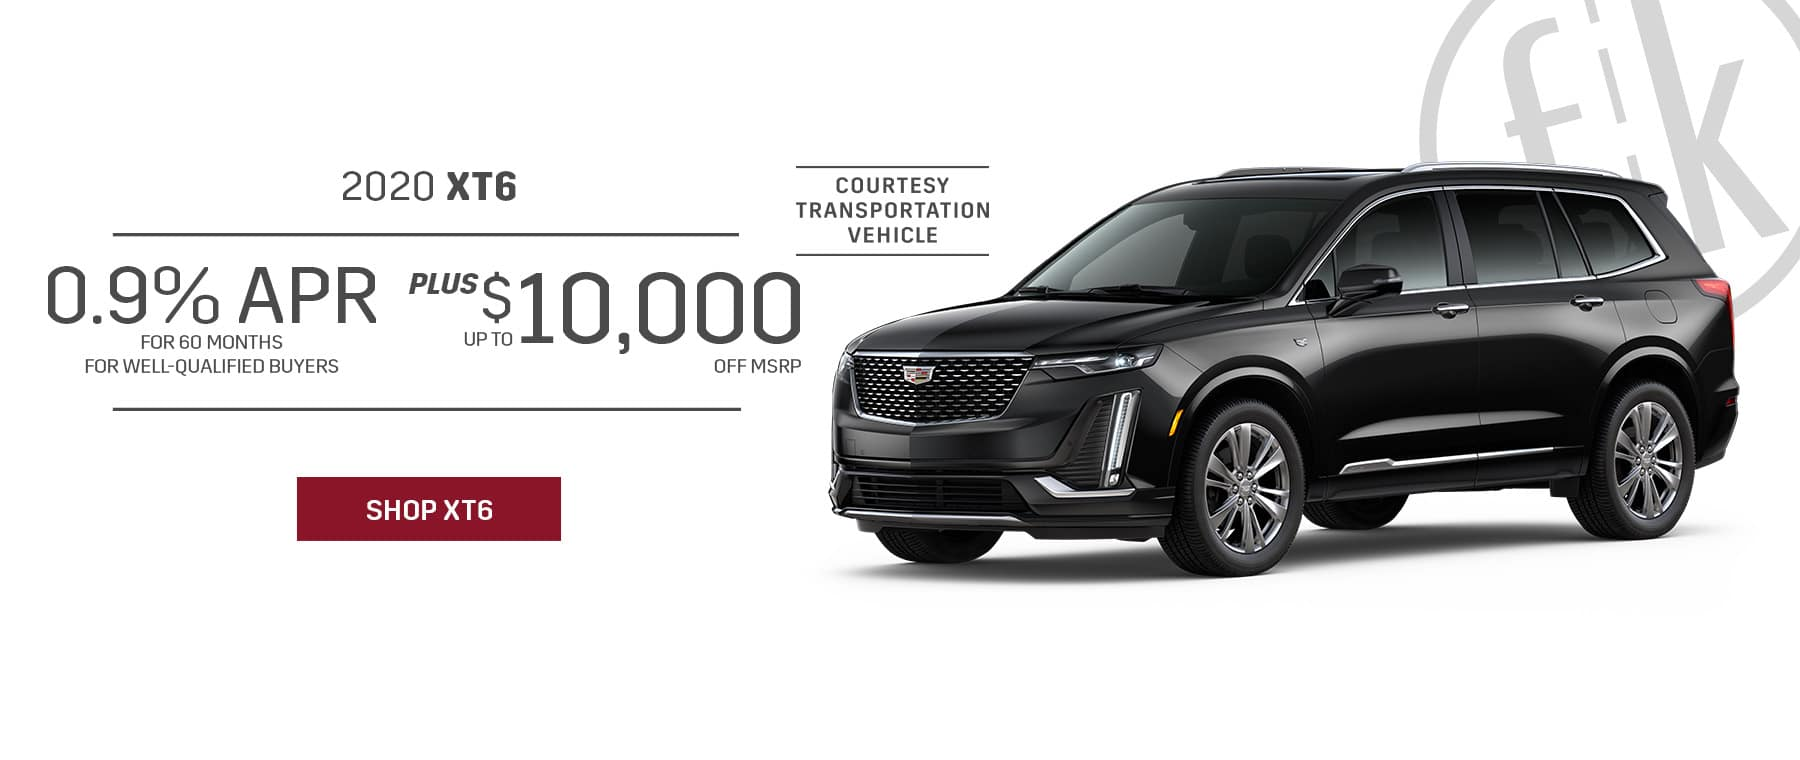 2020 XT6 0.9% for 60 mos. PLUS Up To $10,000 Off